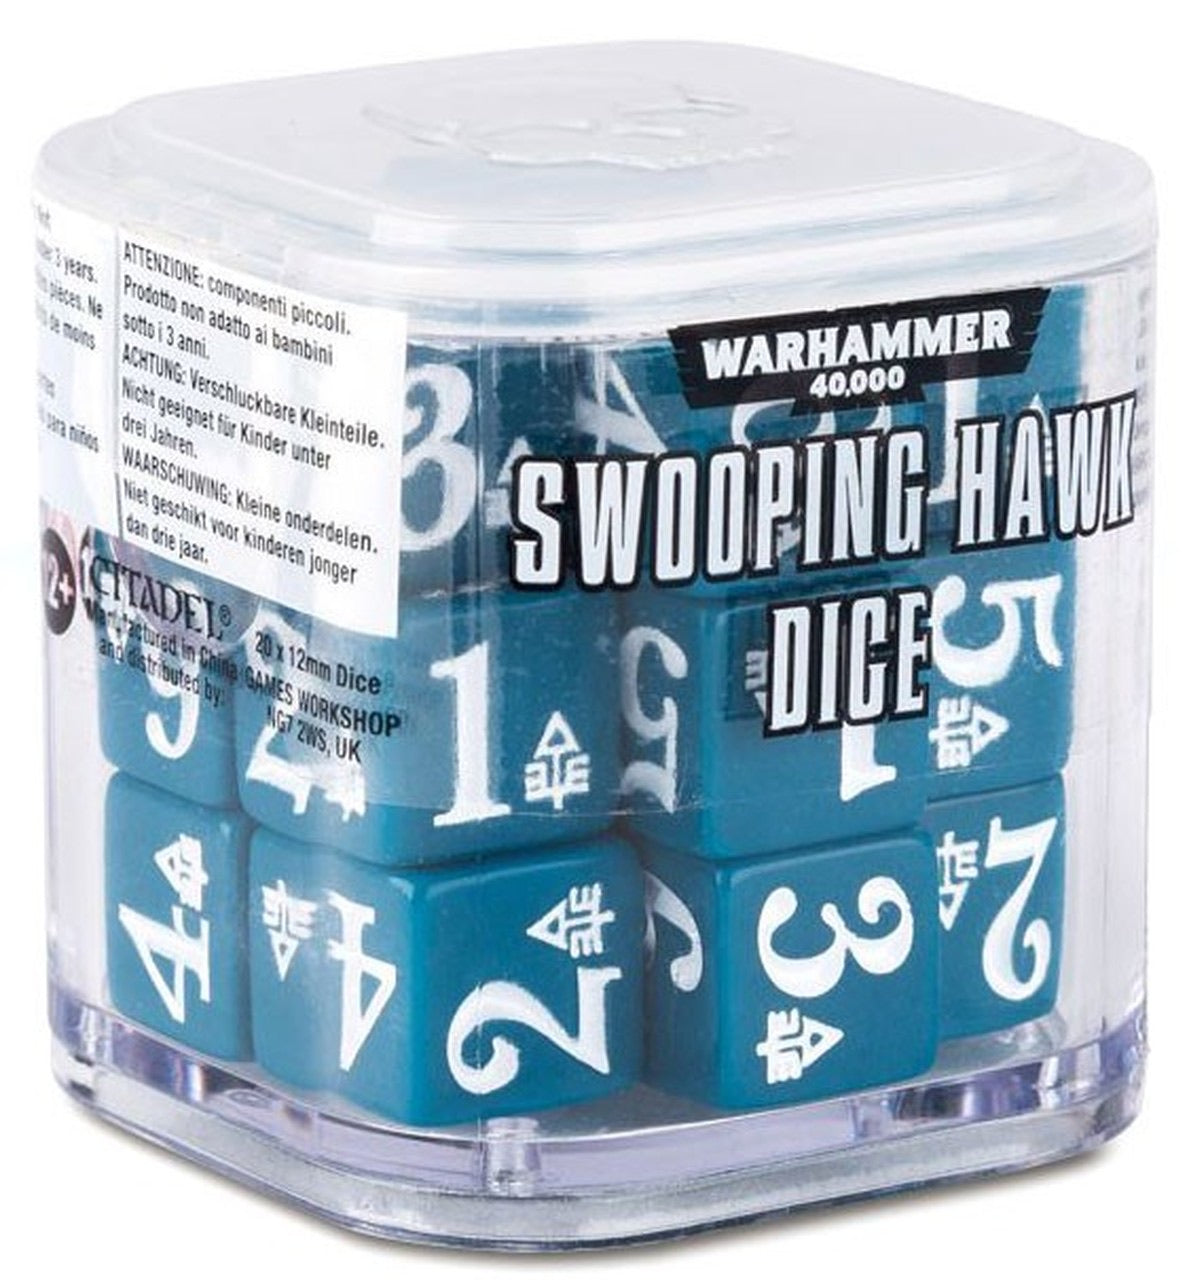 Swooping Hawk Dice Set (Out of Print) | Mythicos